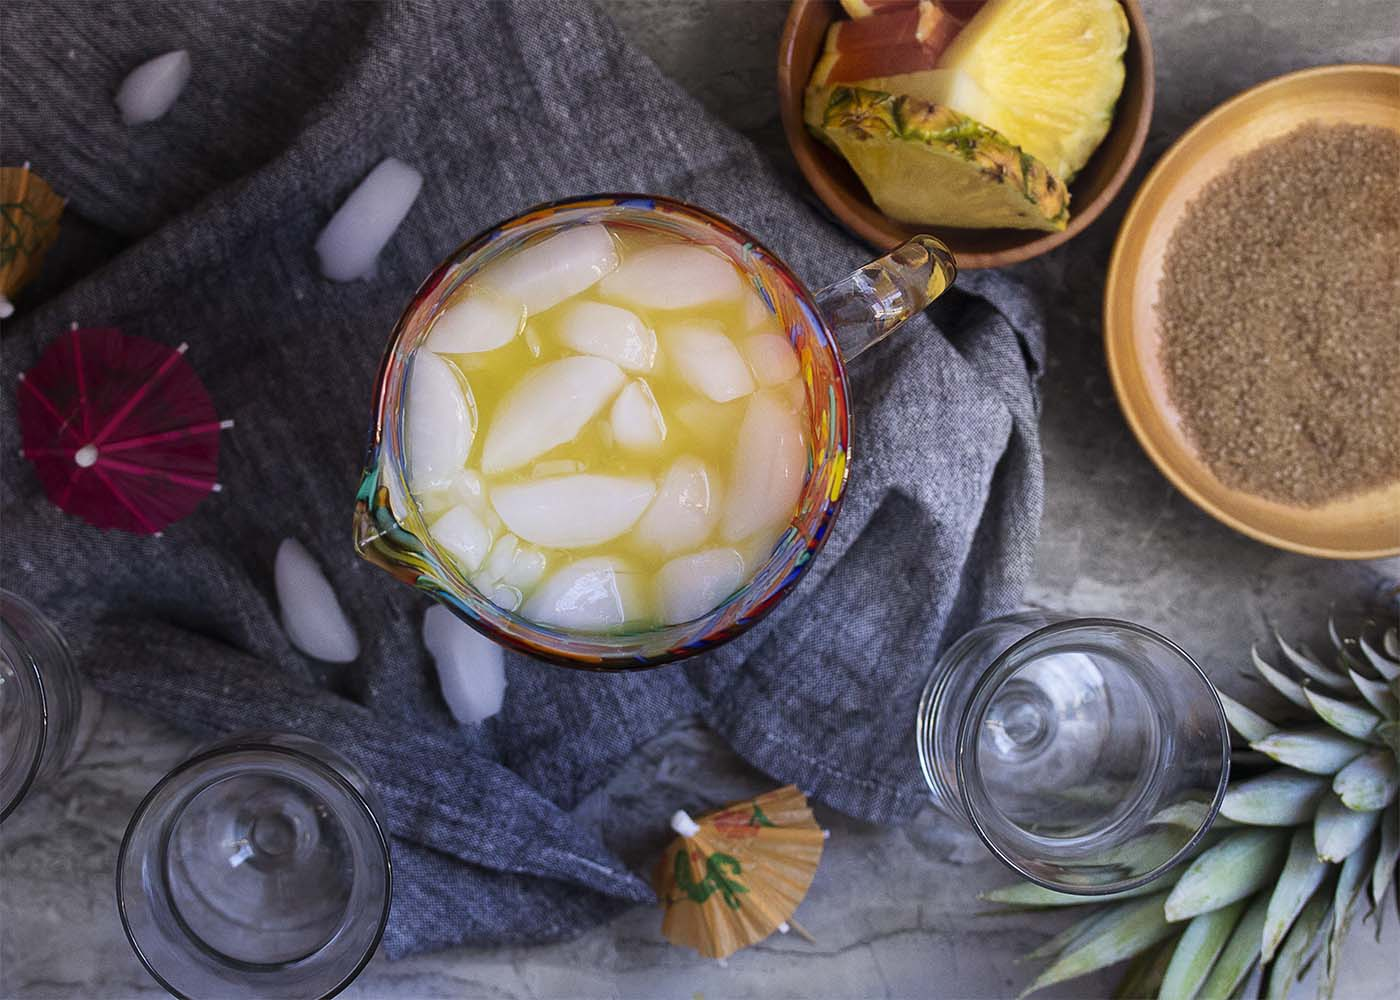 Top view of a pitcher of pineapple rum punch shown with glasses and garnishes.